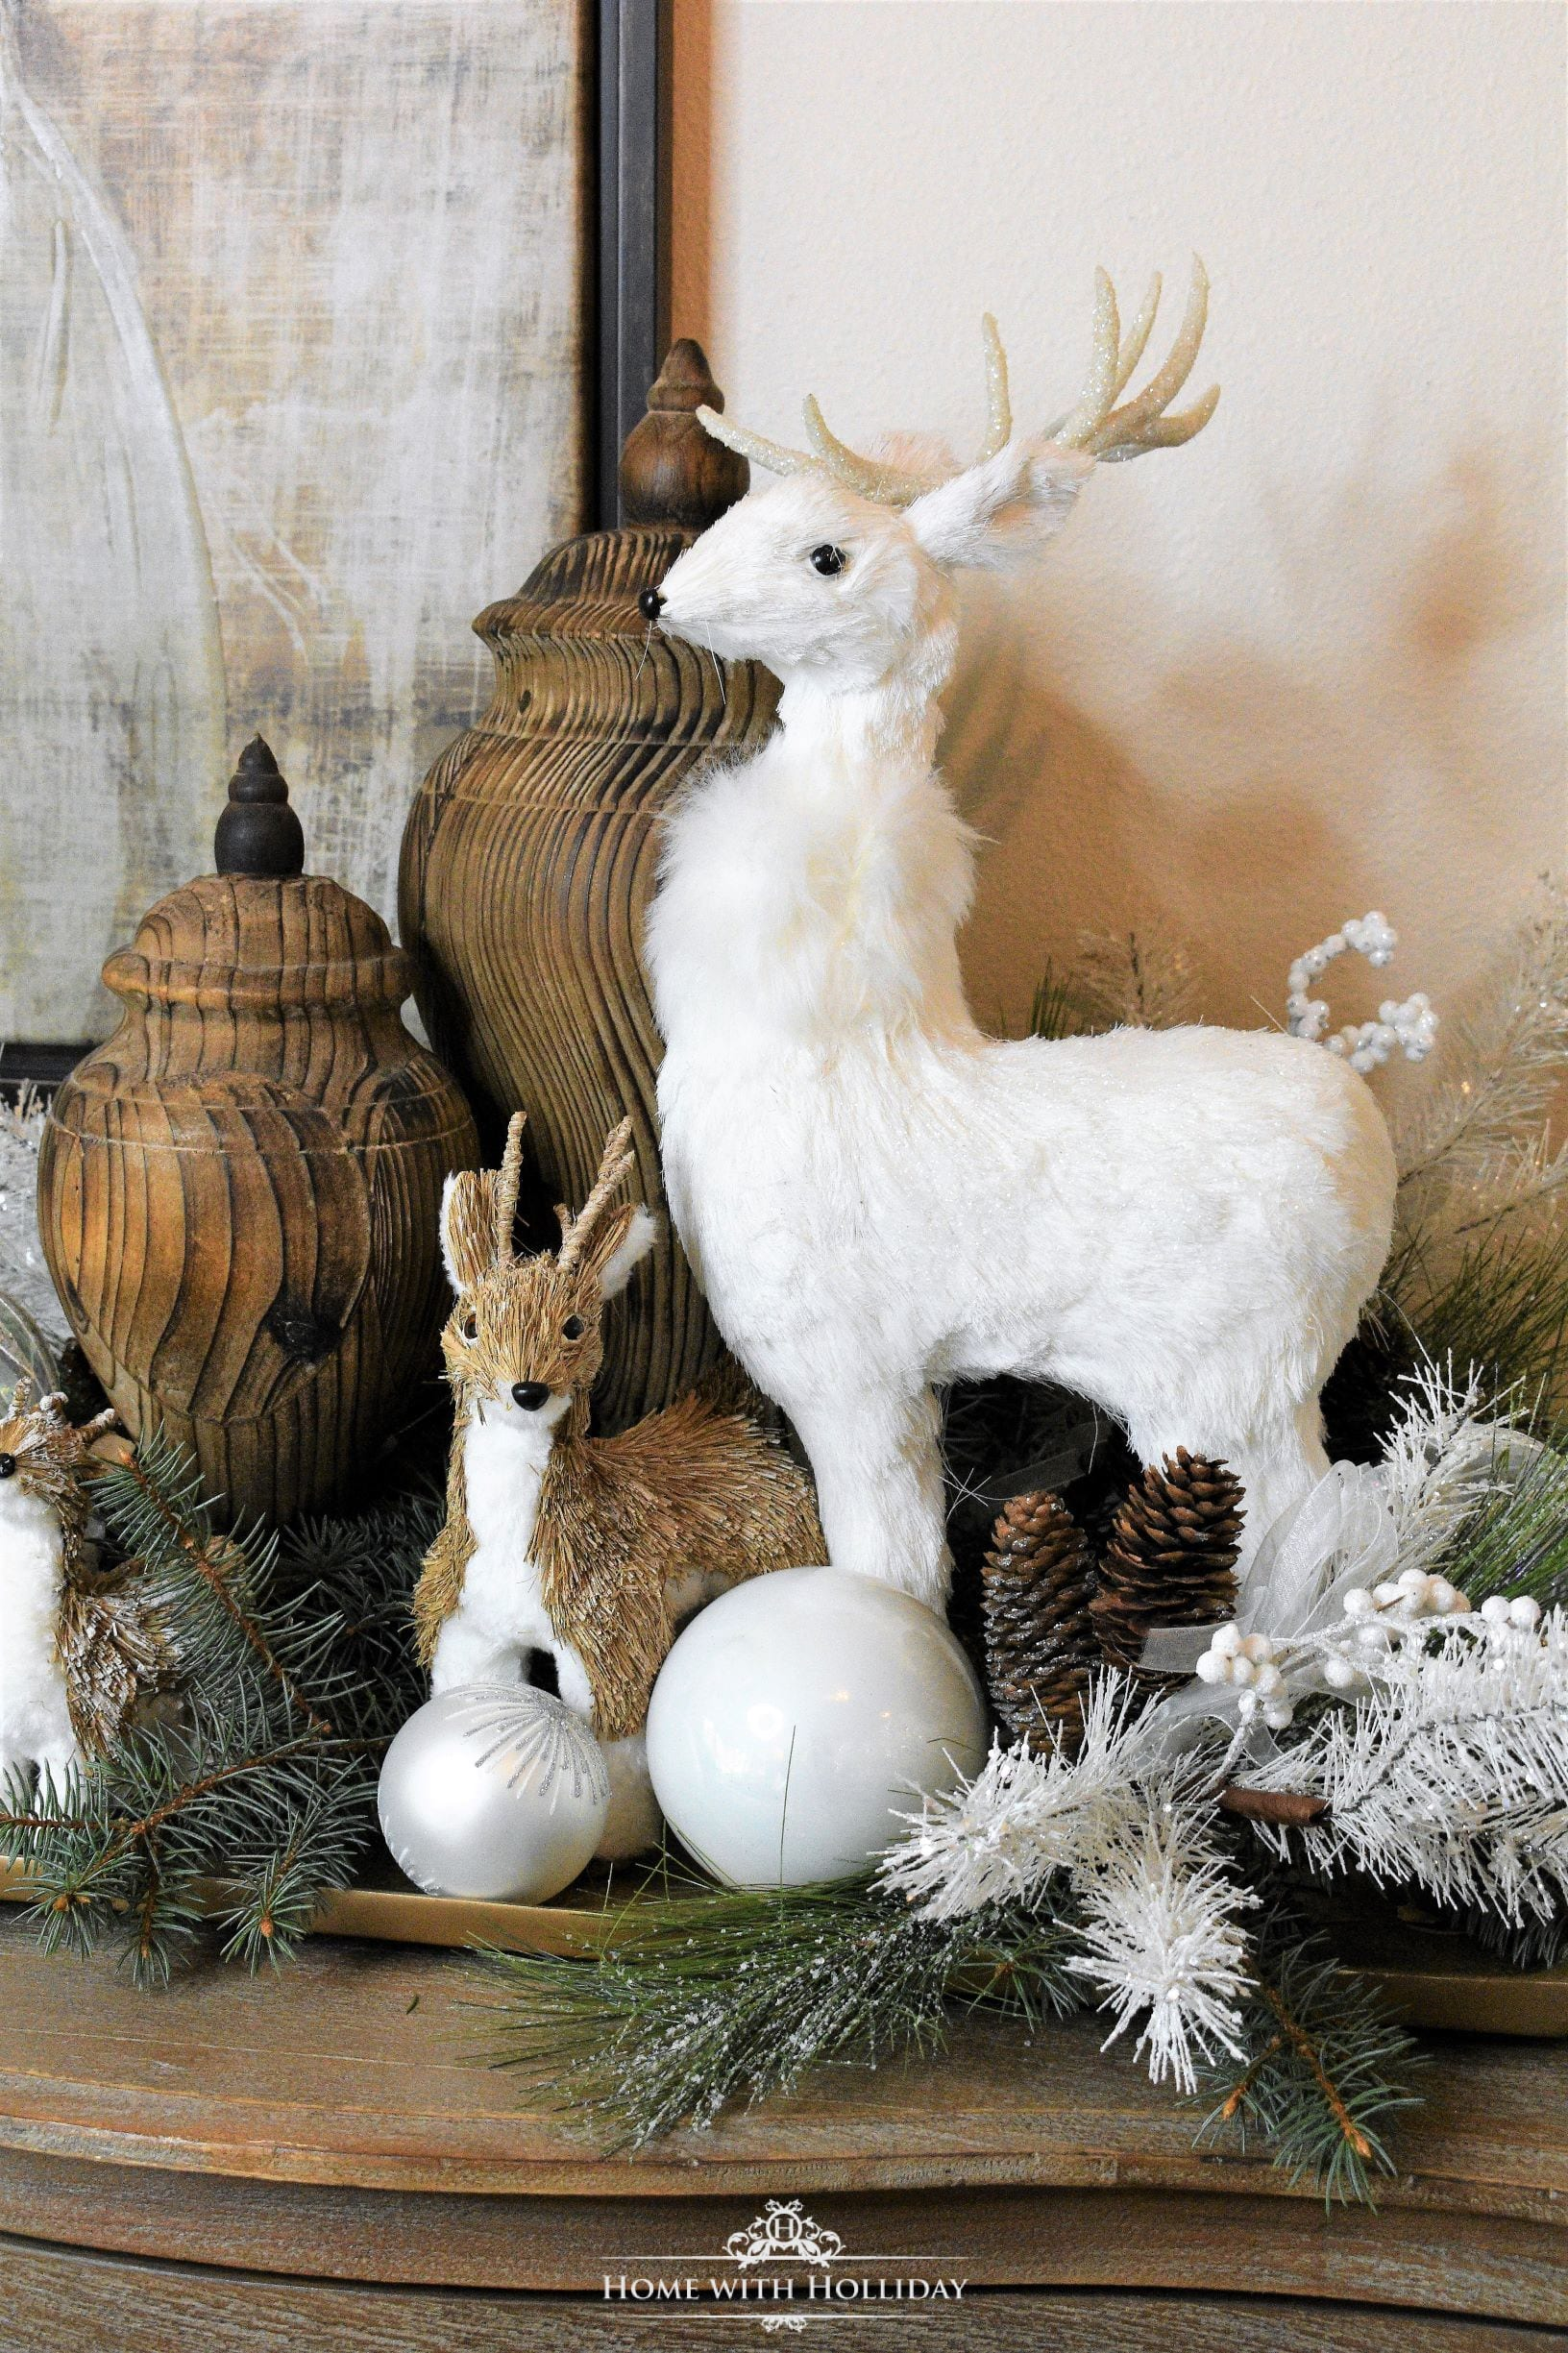 Christmas decor seasonal decor holidays christmas home decor